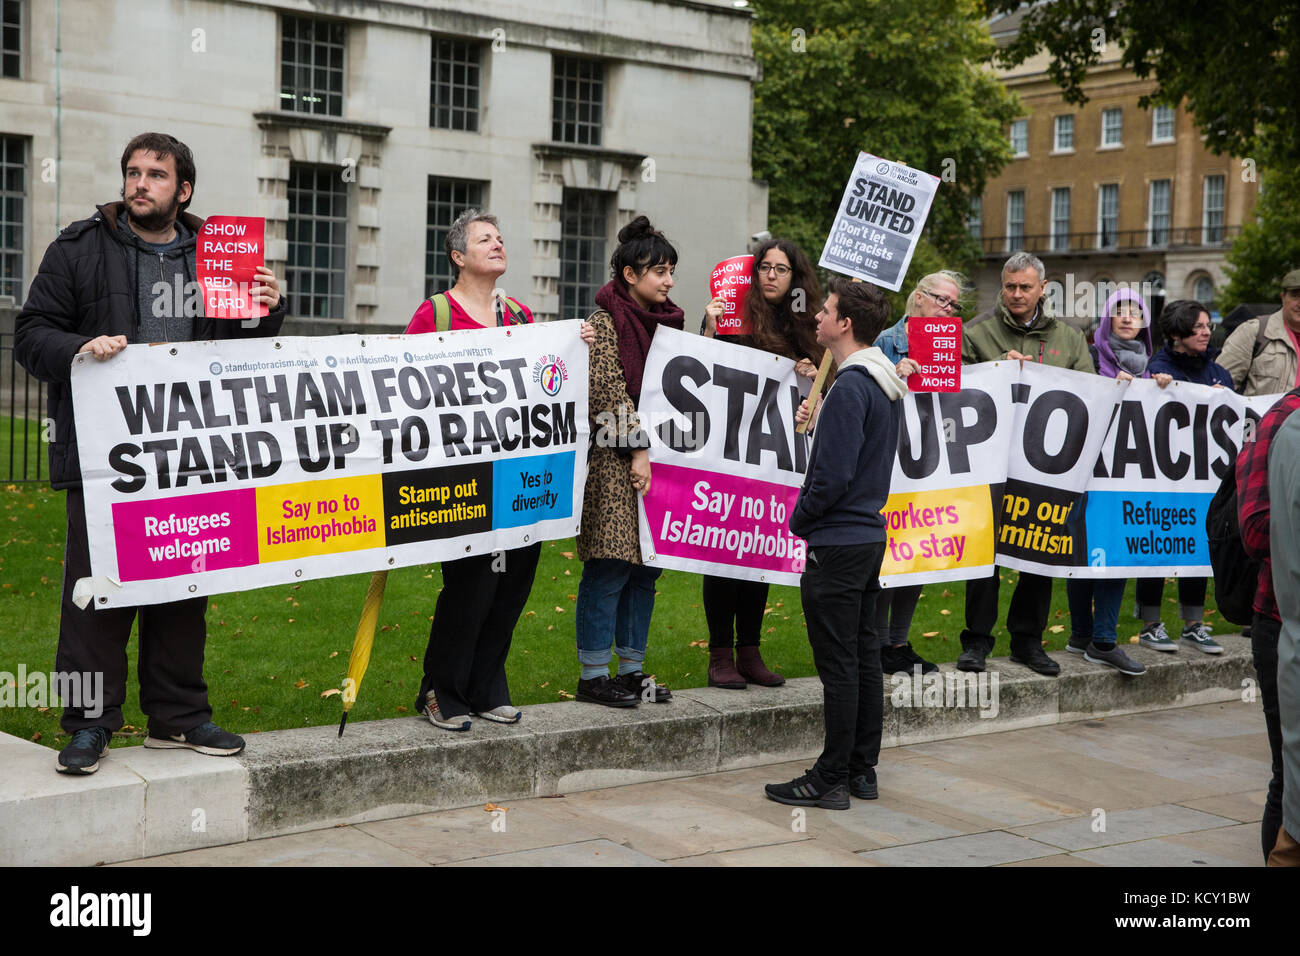 London, UK. 7th October, 2017. Supporters of Stand Up To Racism hold a 'Show Racism The Red Card' protest - Stock Image